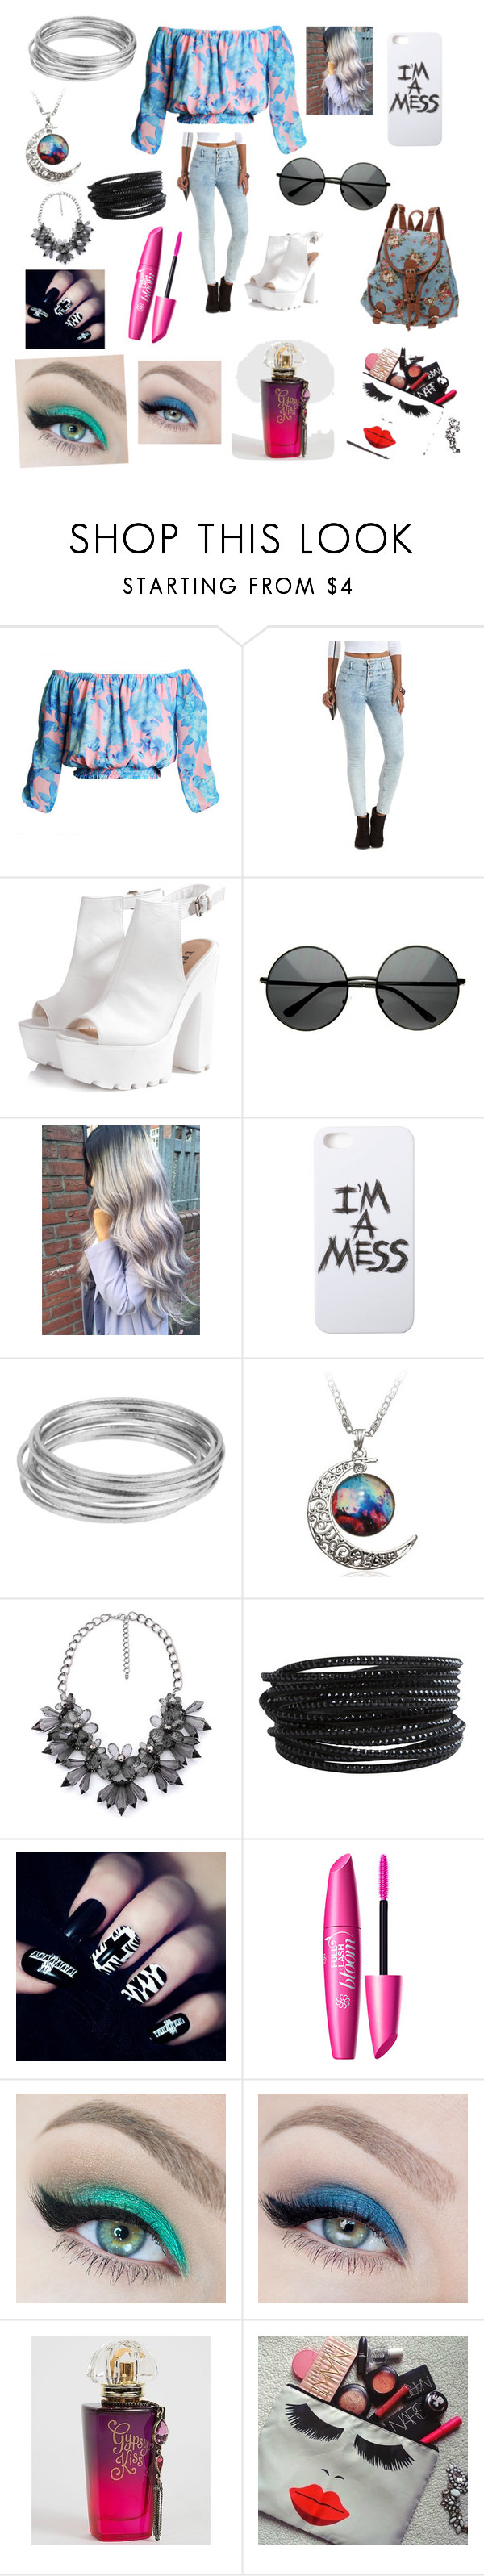 """""""!!!mαll!!"""" by trust-kashmir ❤ liked on Polyvore featuring Refuge, Glamorous, MLC Eyewear, LAUREN MOSHI, Worthington, Pieces and Holy Ghost"""